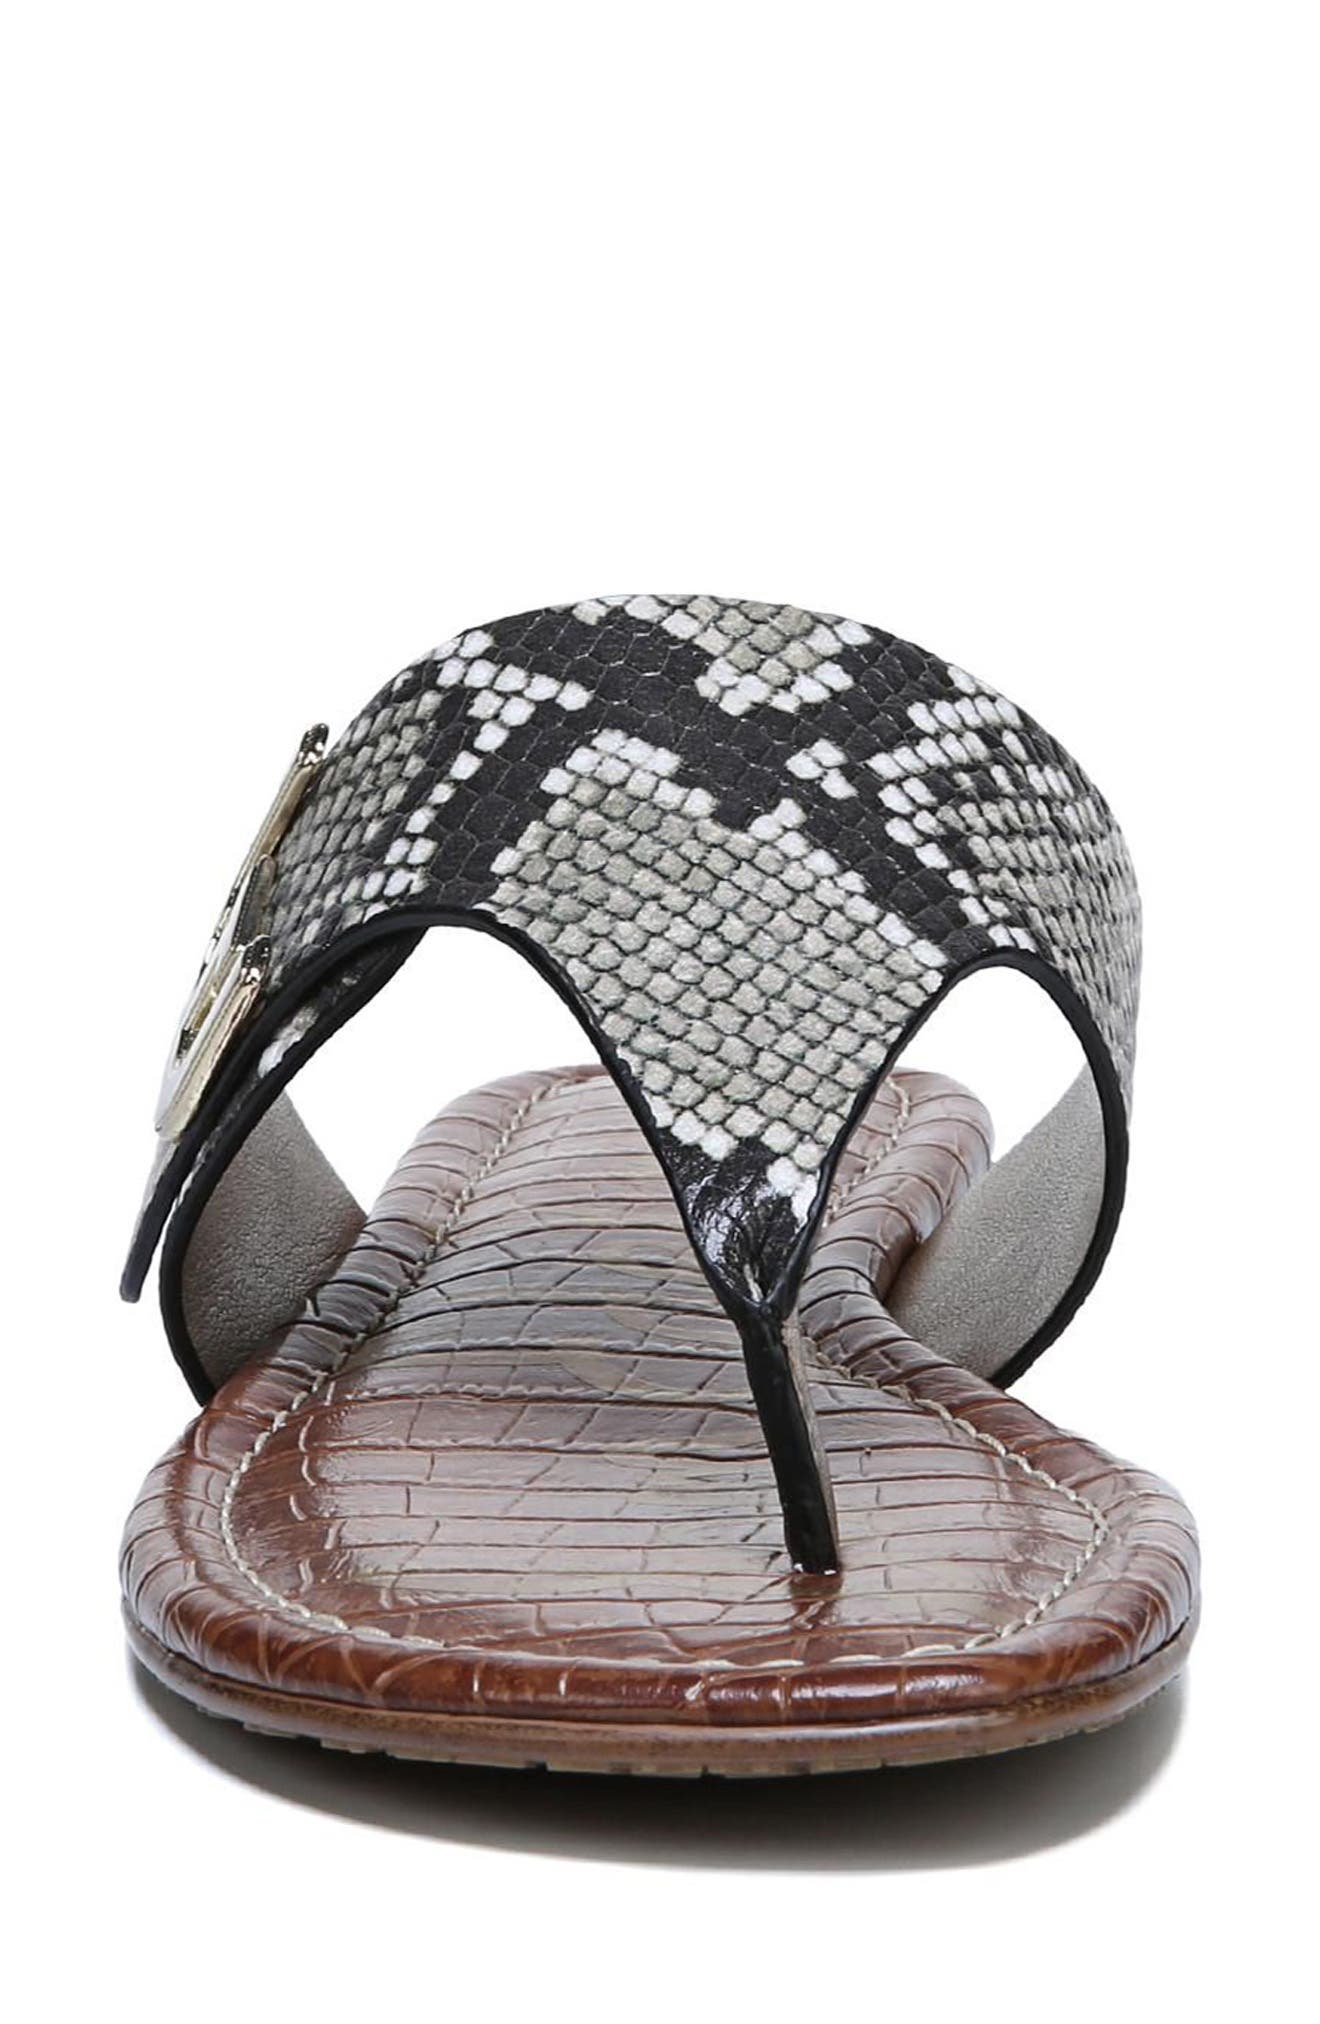 Barry V-Strap Thong Sandal,                             Alternate thumbnail 4, color,                             NATURAL SNAKE PRINT LEATHER